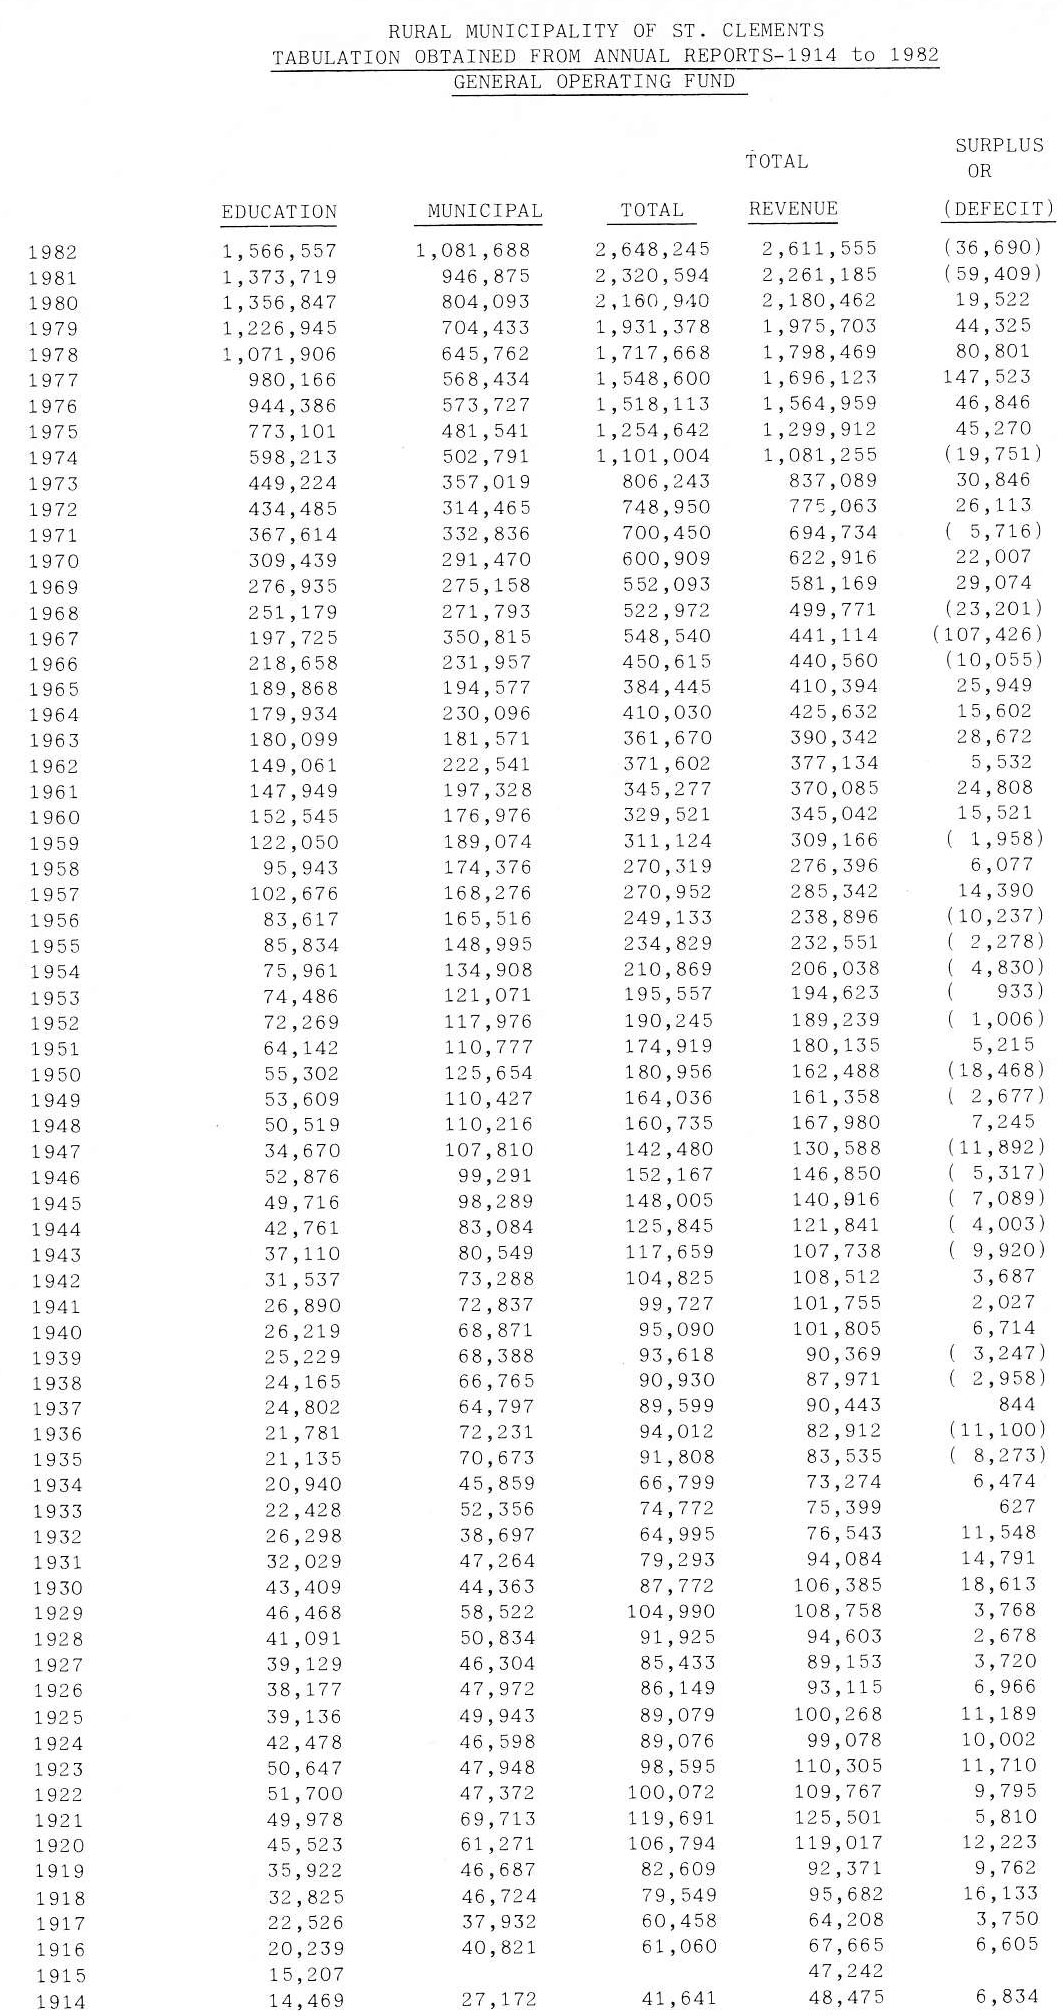 Table of General Operating Fund 1915-1982